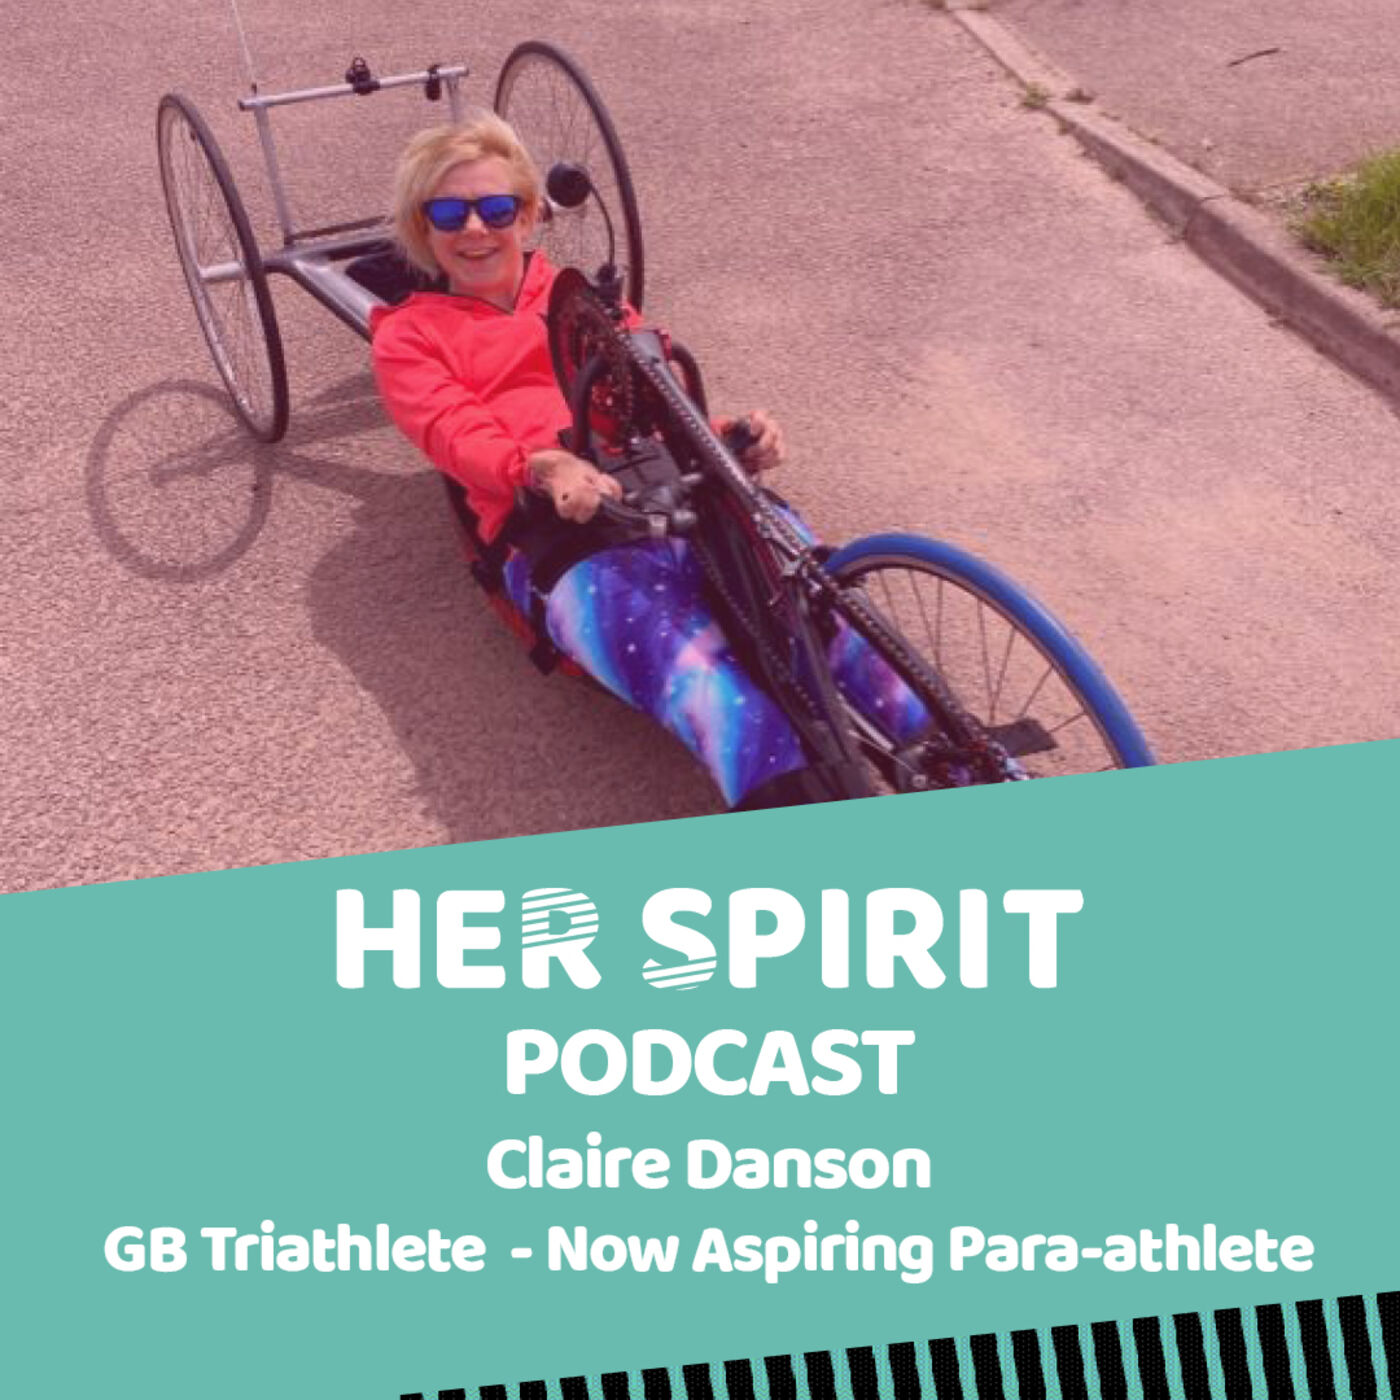 Claire Danson talks openly to Louise and Annie about her life over the last year. A cycling accident one year ago left her paralysed but her zest for life is still as strong. It's a story of going from European champion to life in a wheelchair.